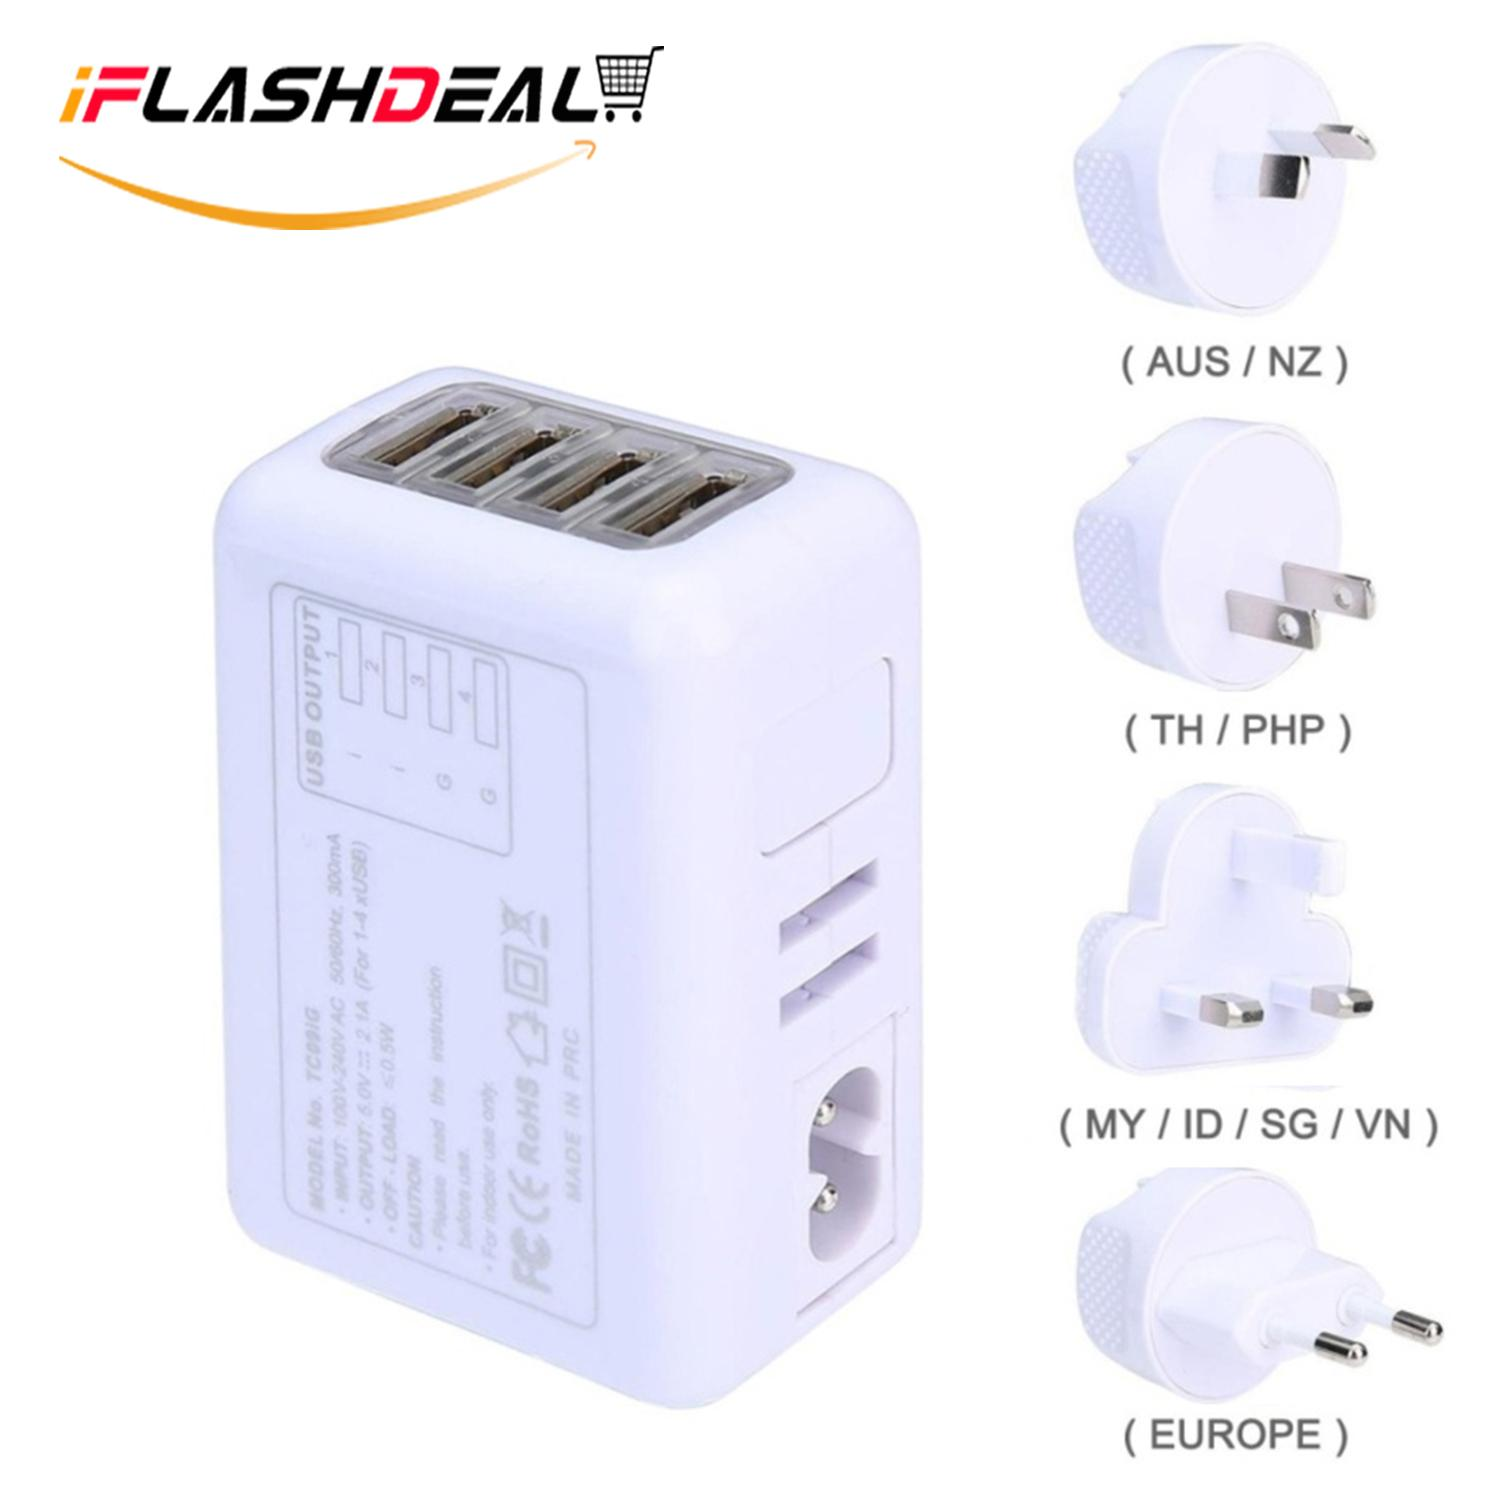 Iflashdeal Charger Kabel Universal International Travel Adaptor/colokan Listrik/charger All In One Free Travel Mini Cosmetic Bag By Iflashdeal.